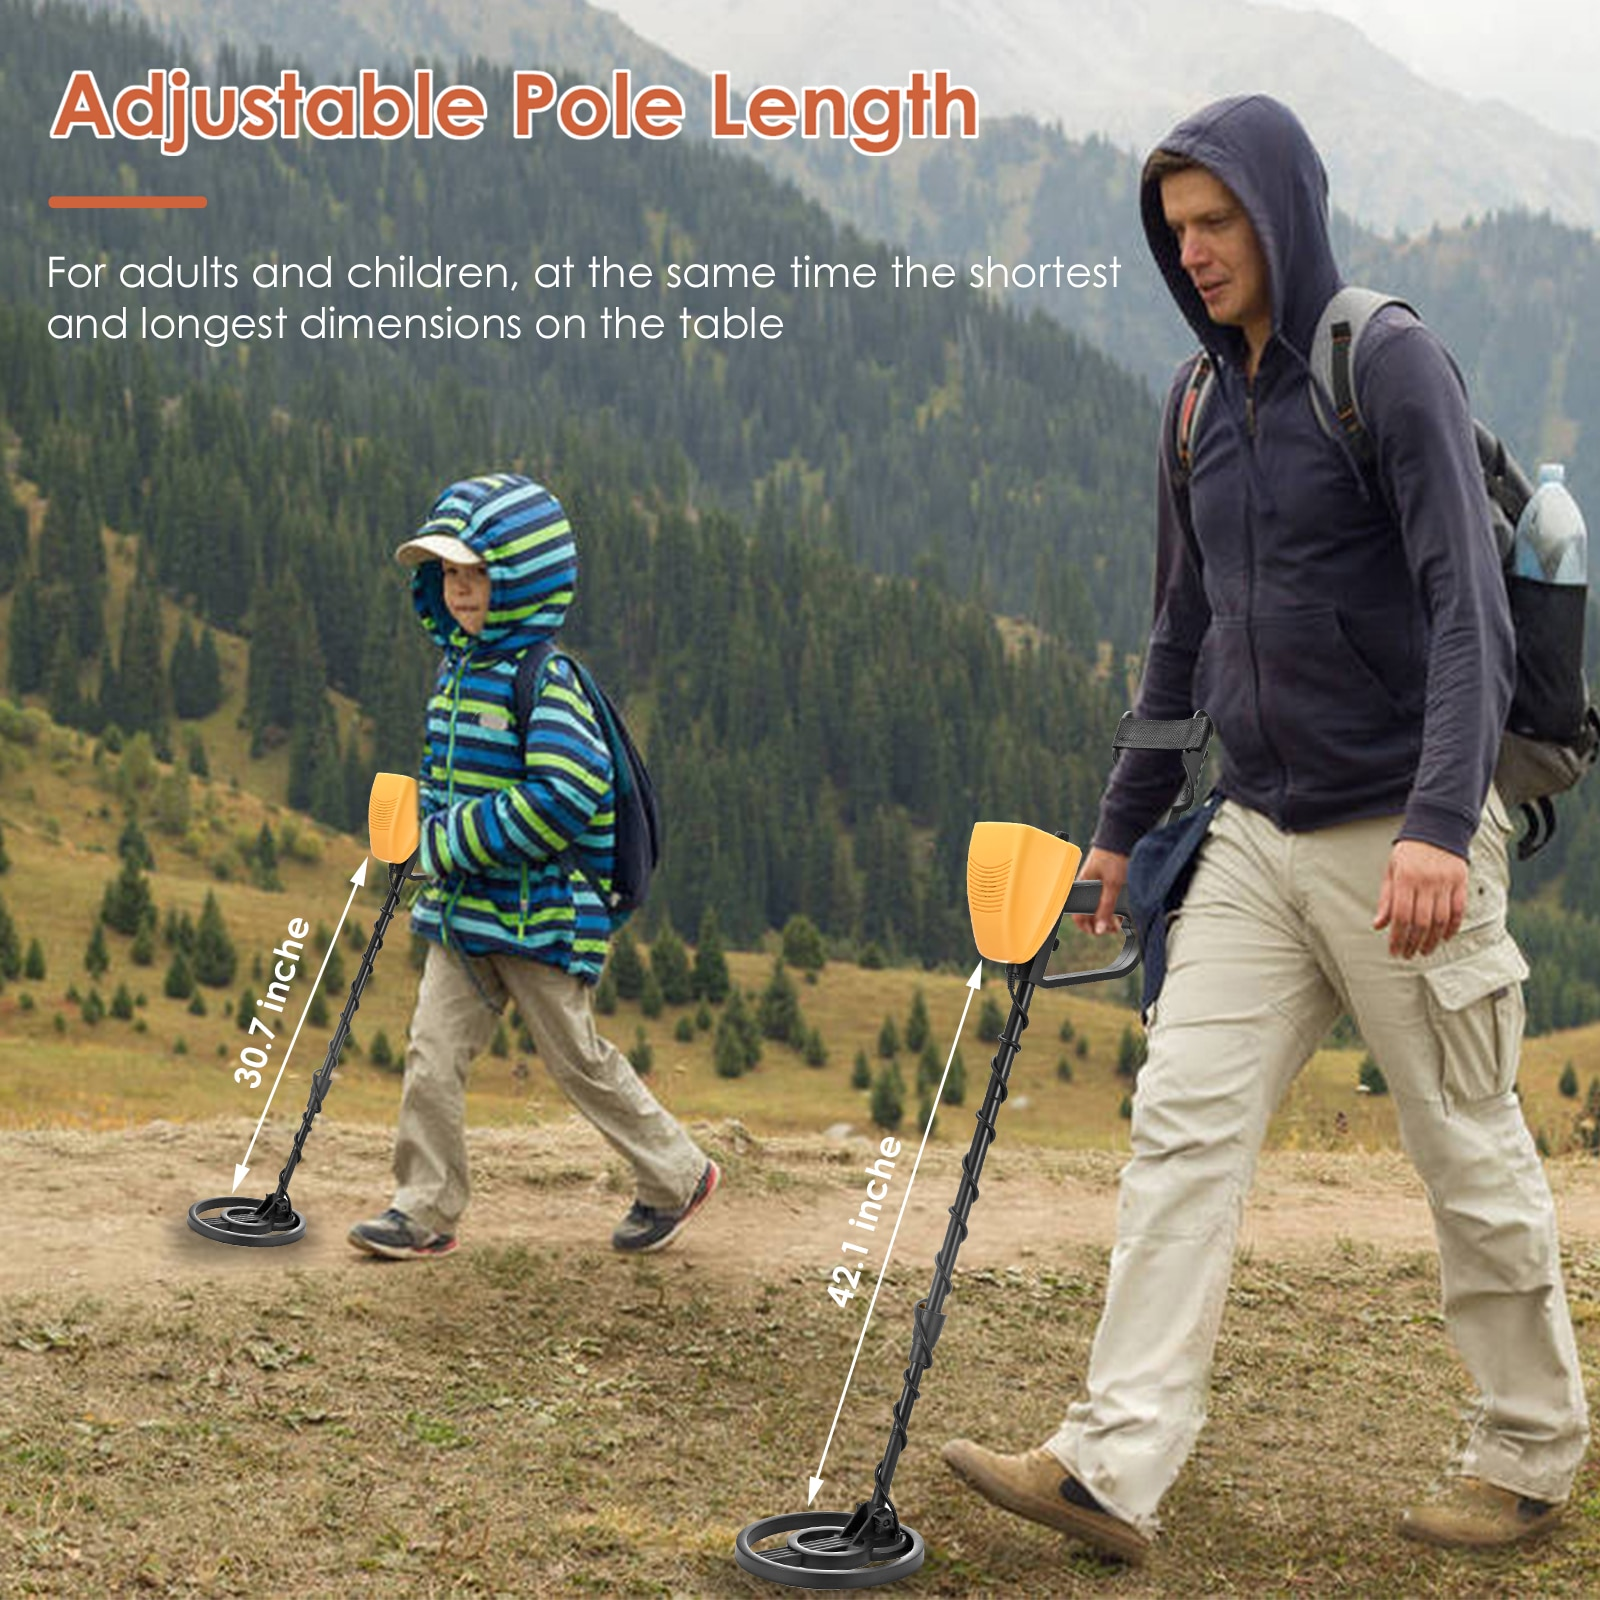 High Accuracy Waterproof Metal Detectors With LCD Display All Metal& Pinpoint Mode 2 Pounds7.5Inch Search Coil enlarge